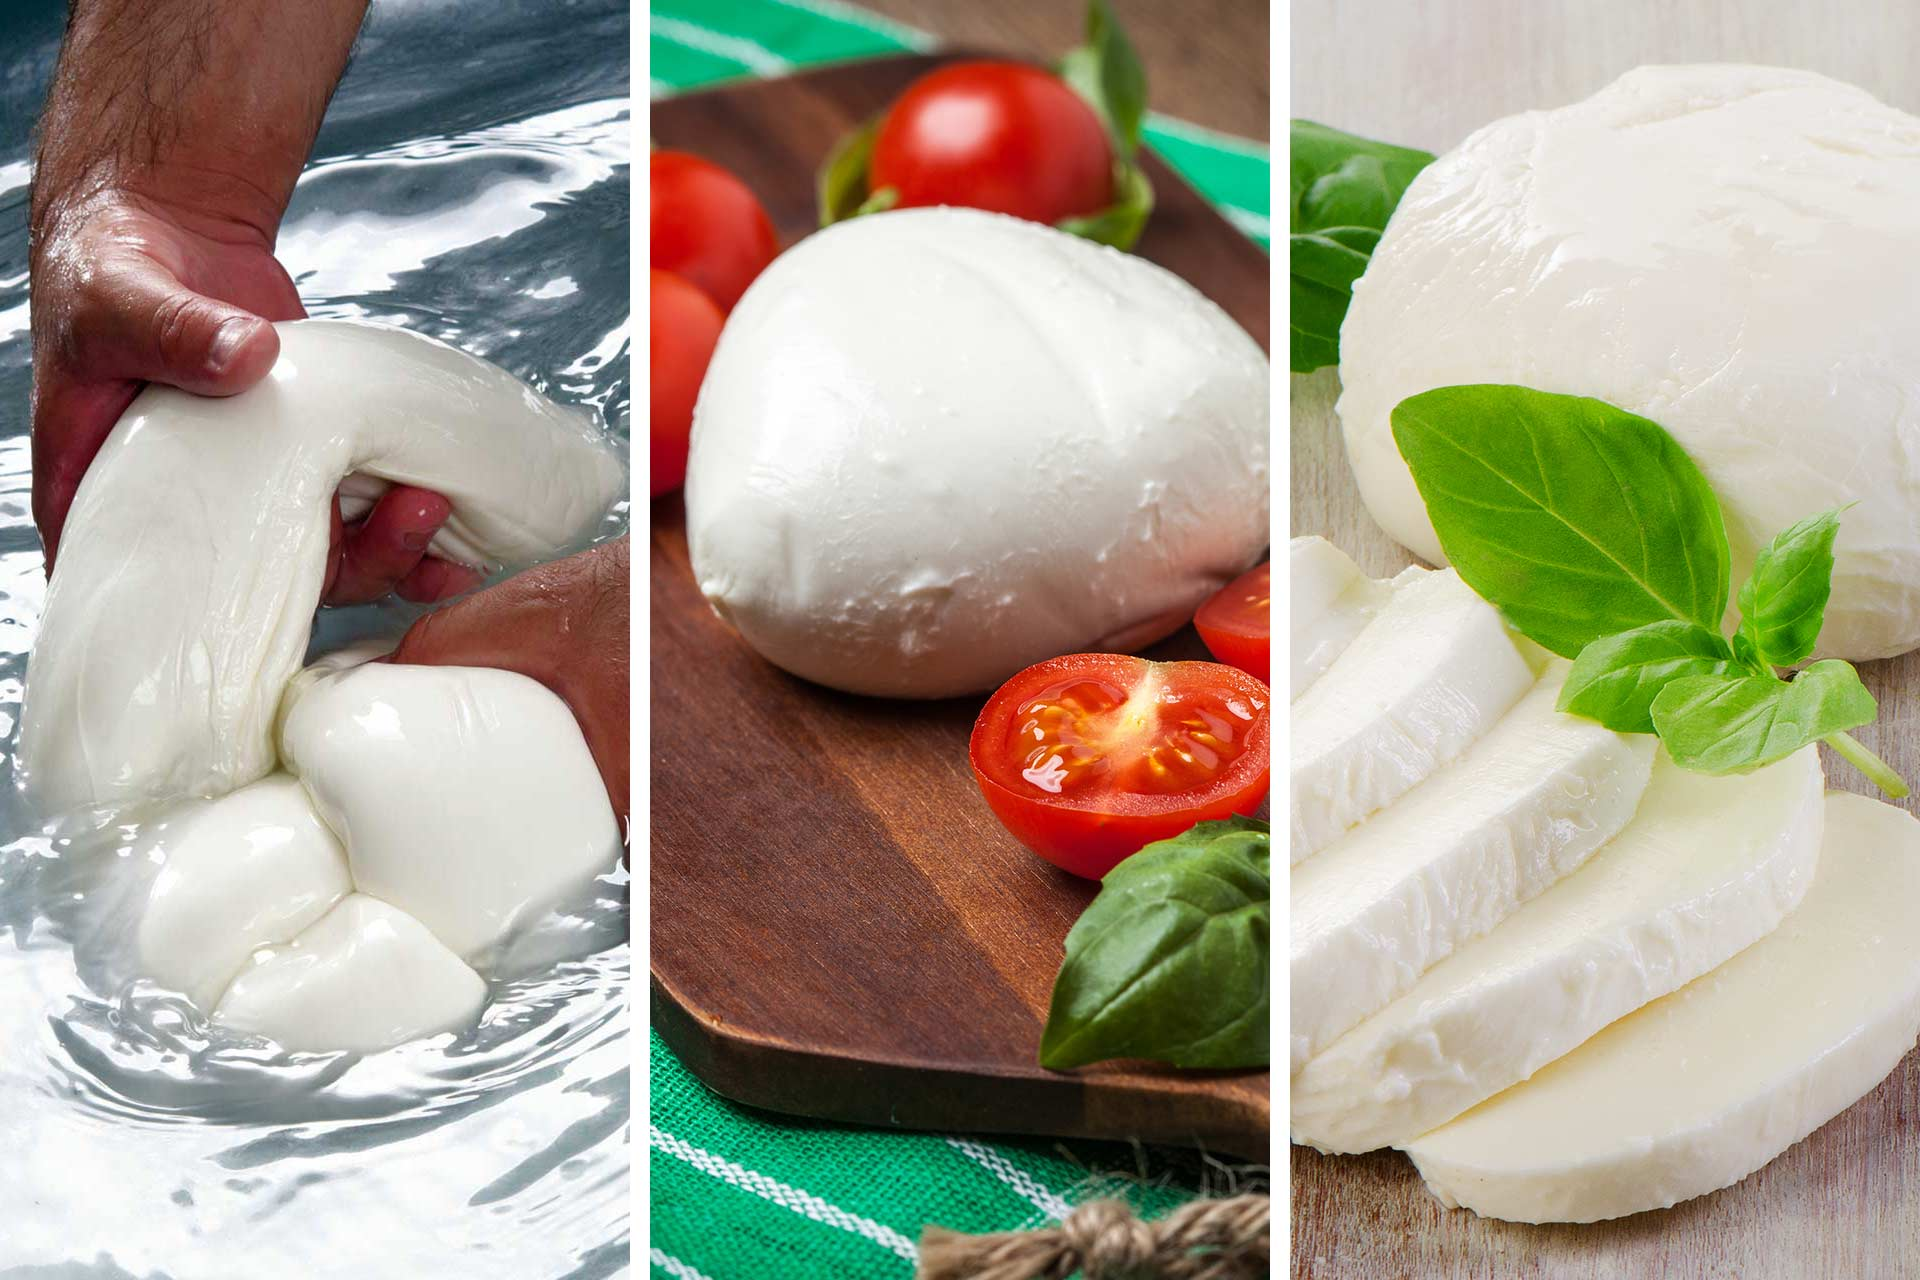 Mozzarella Making